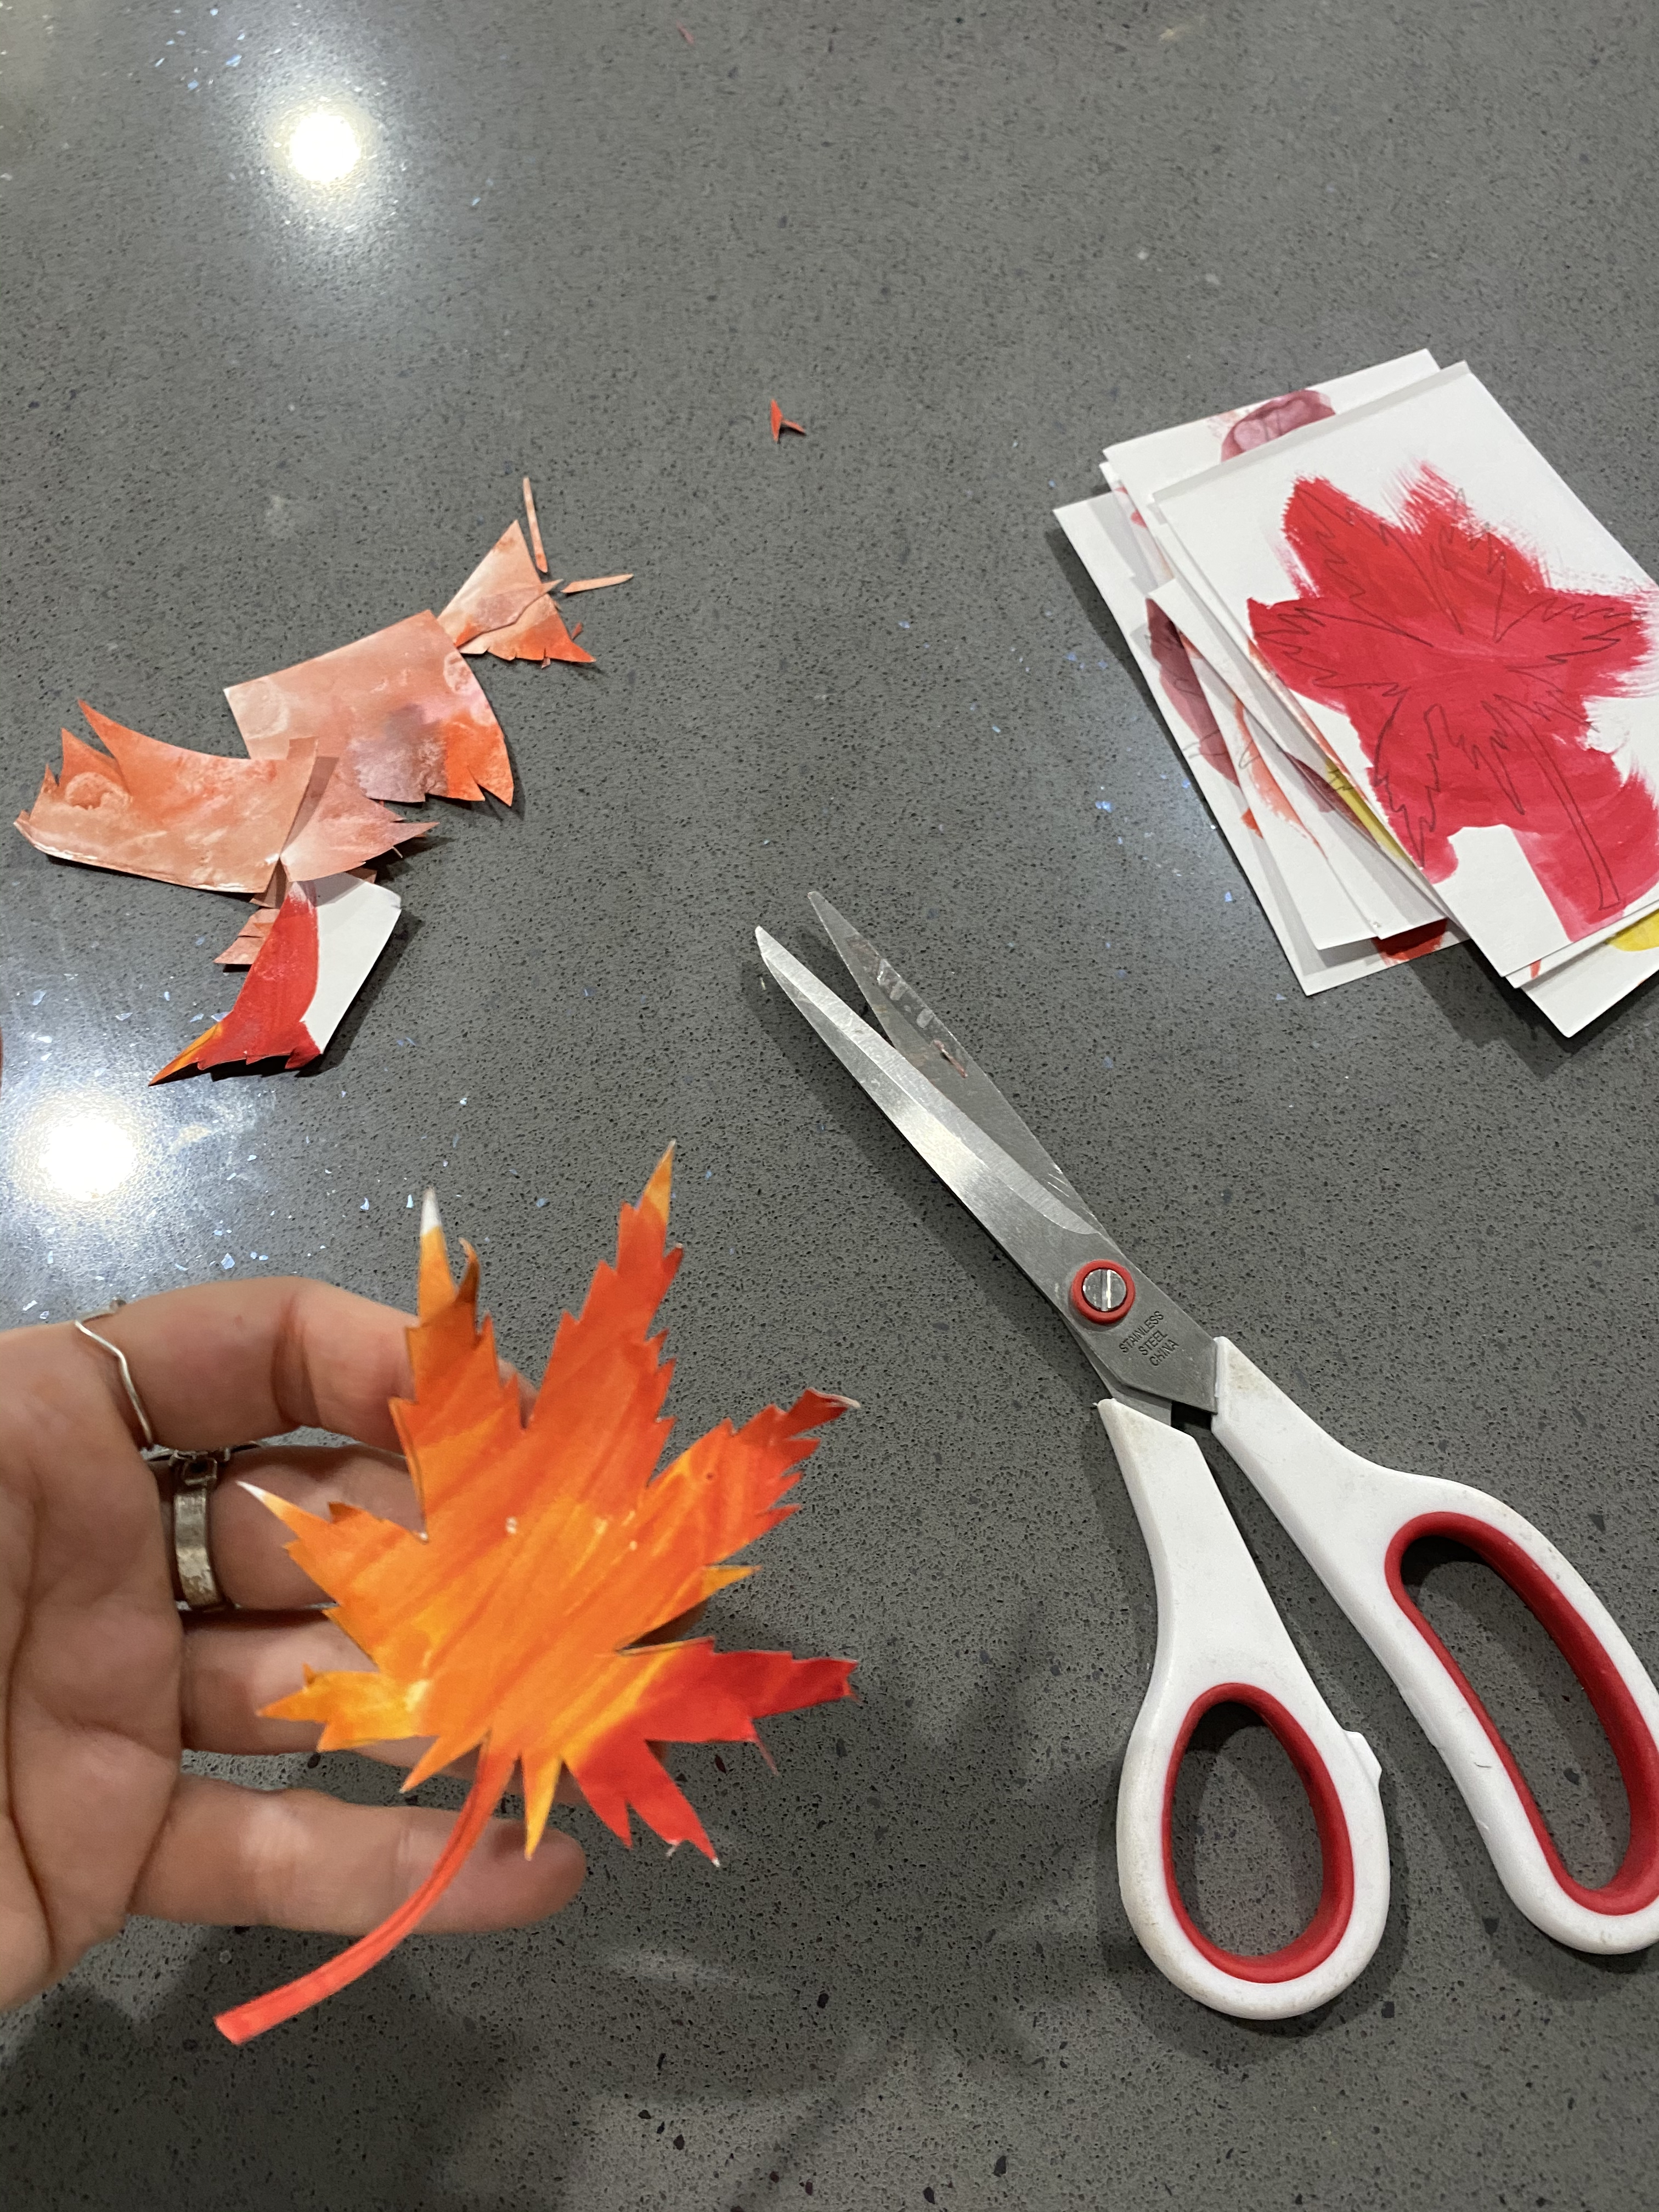 cut out each leaf with scissors.